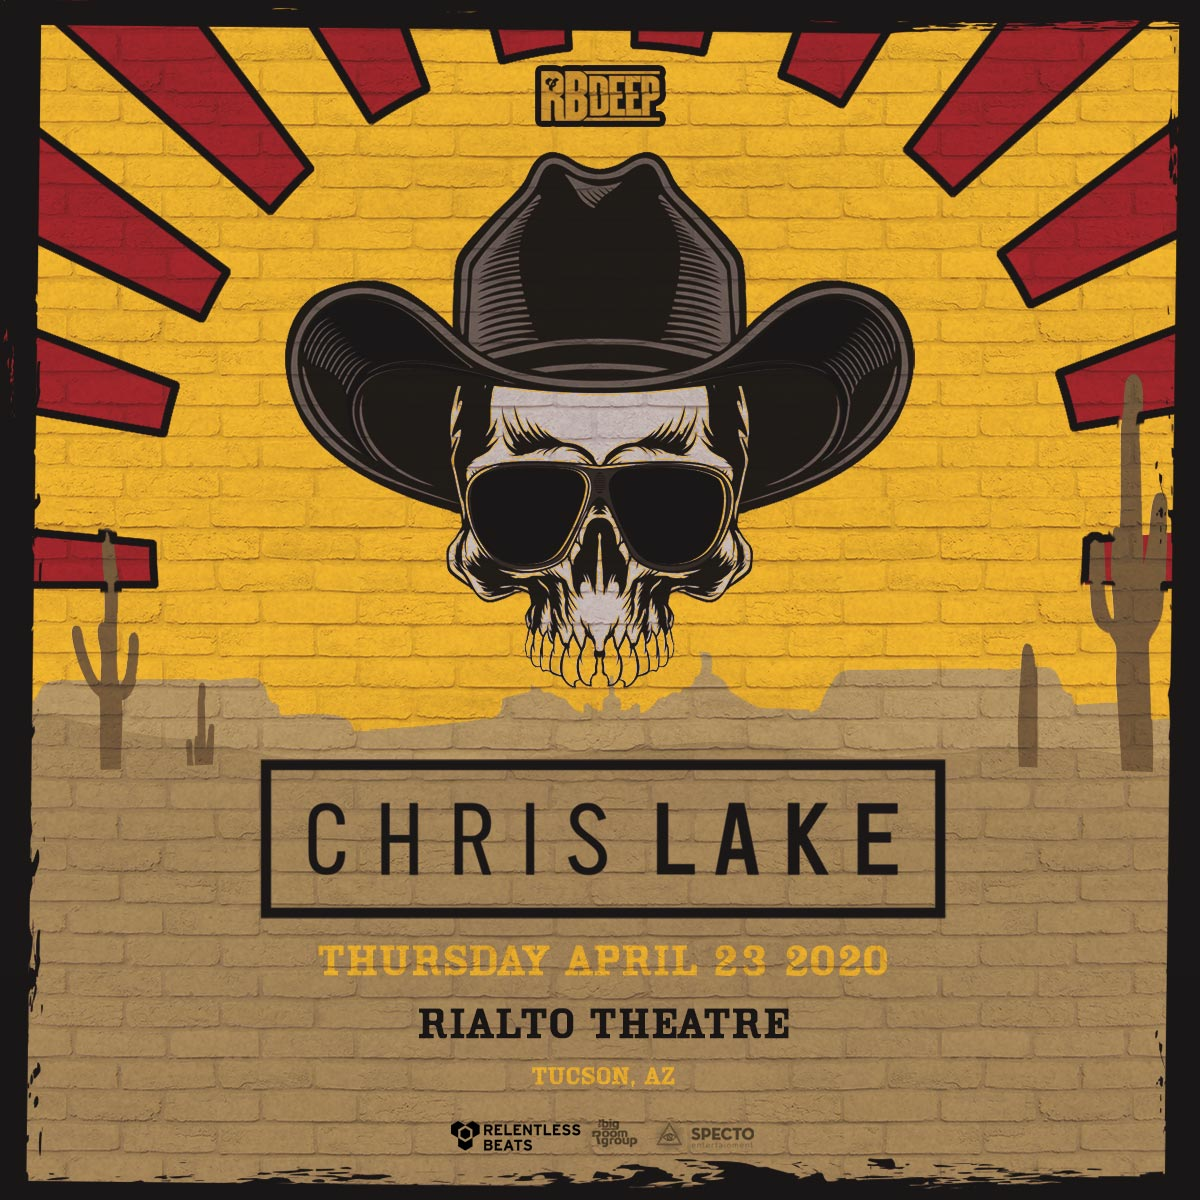 Flyer for Chris Lake